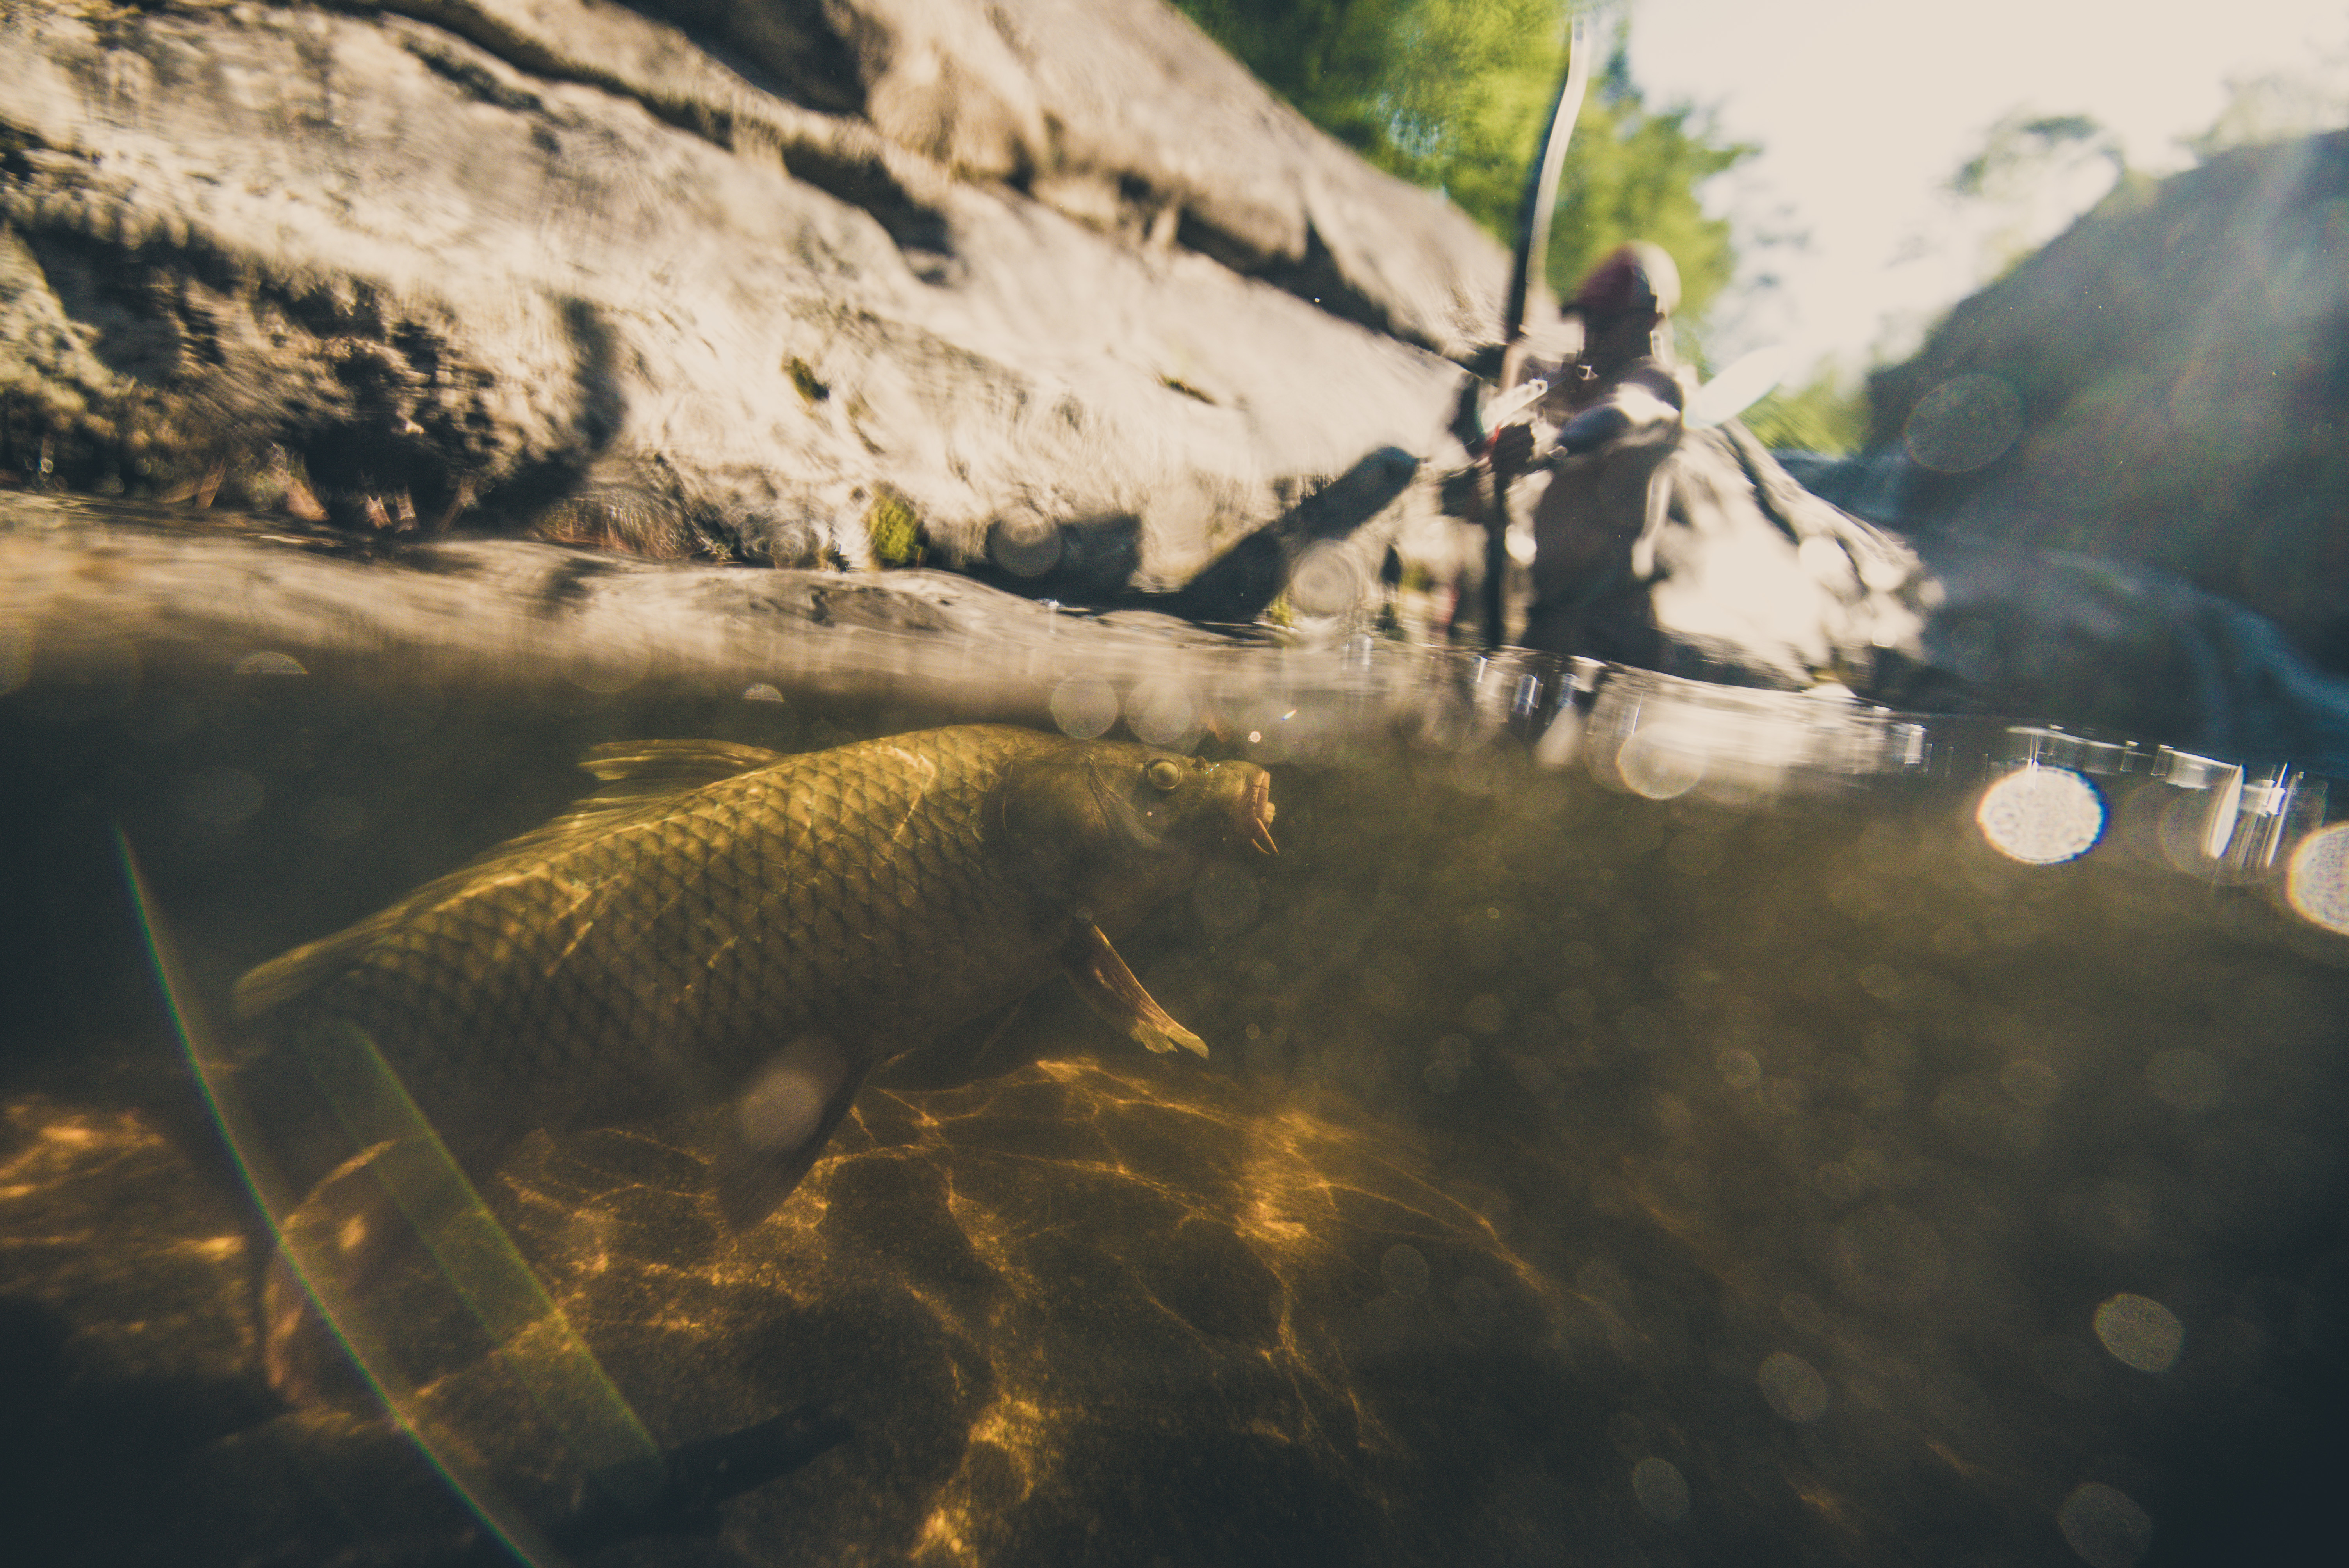 Bowfishing: What to Do with Your Fish